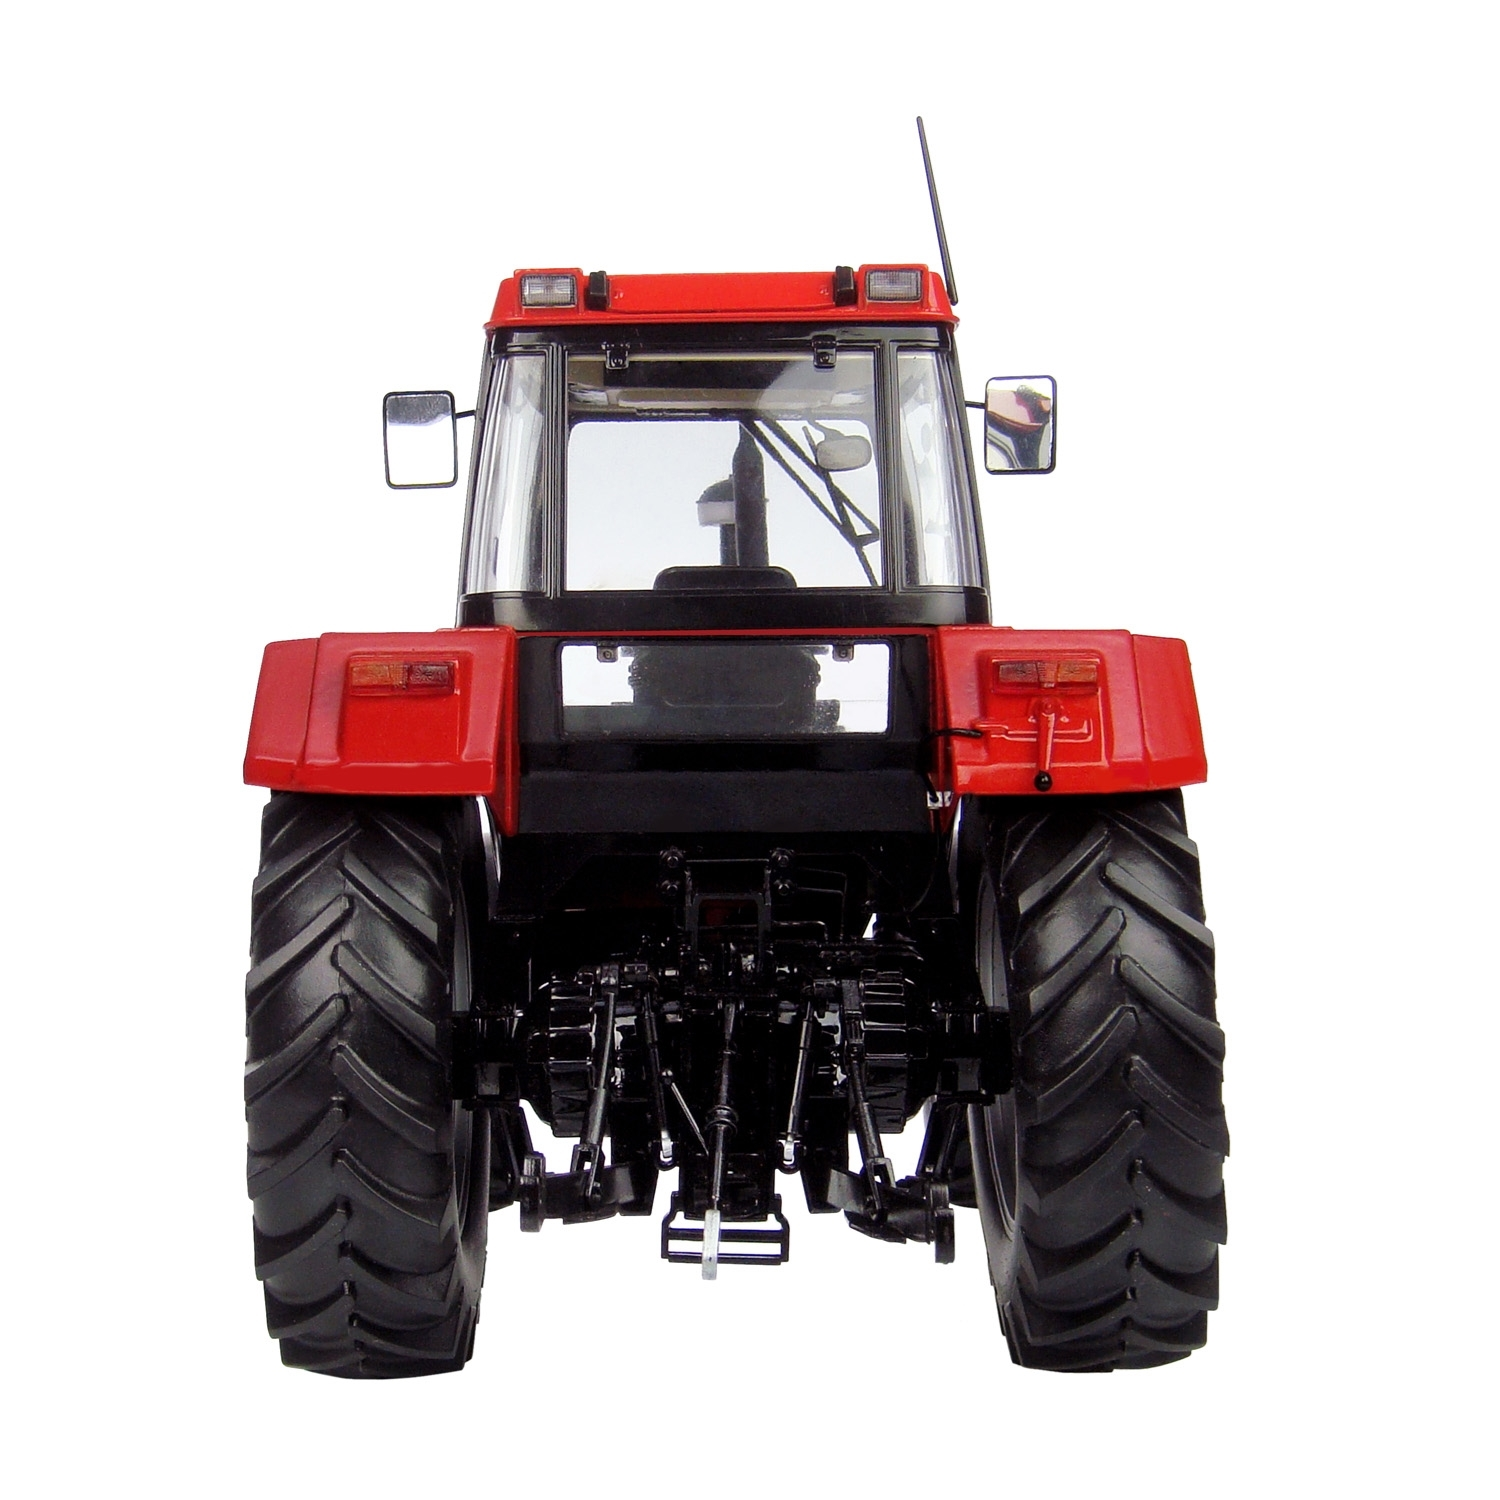 Case IH. Model 1455XL 2nd Generation